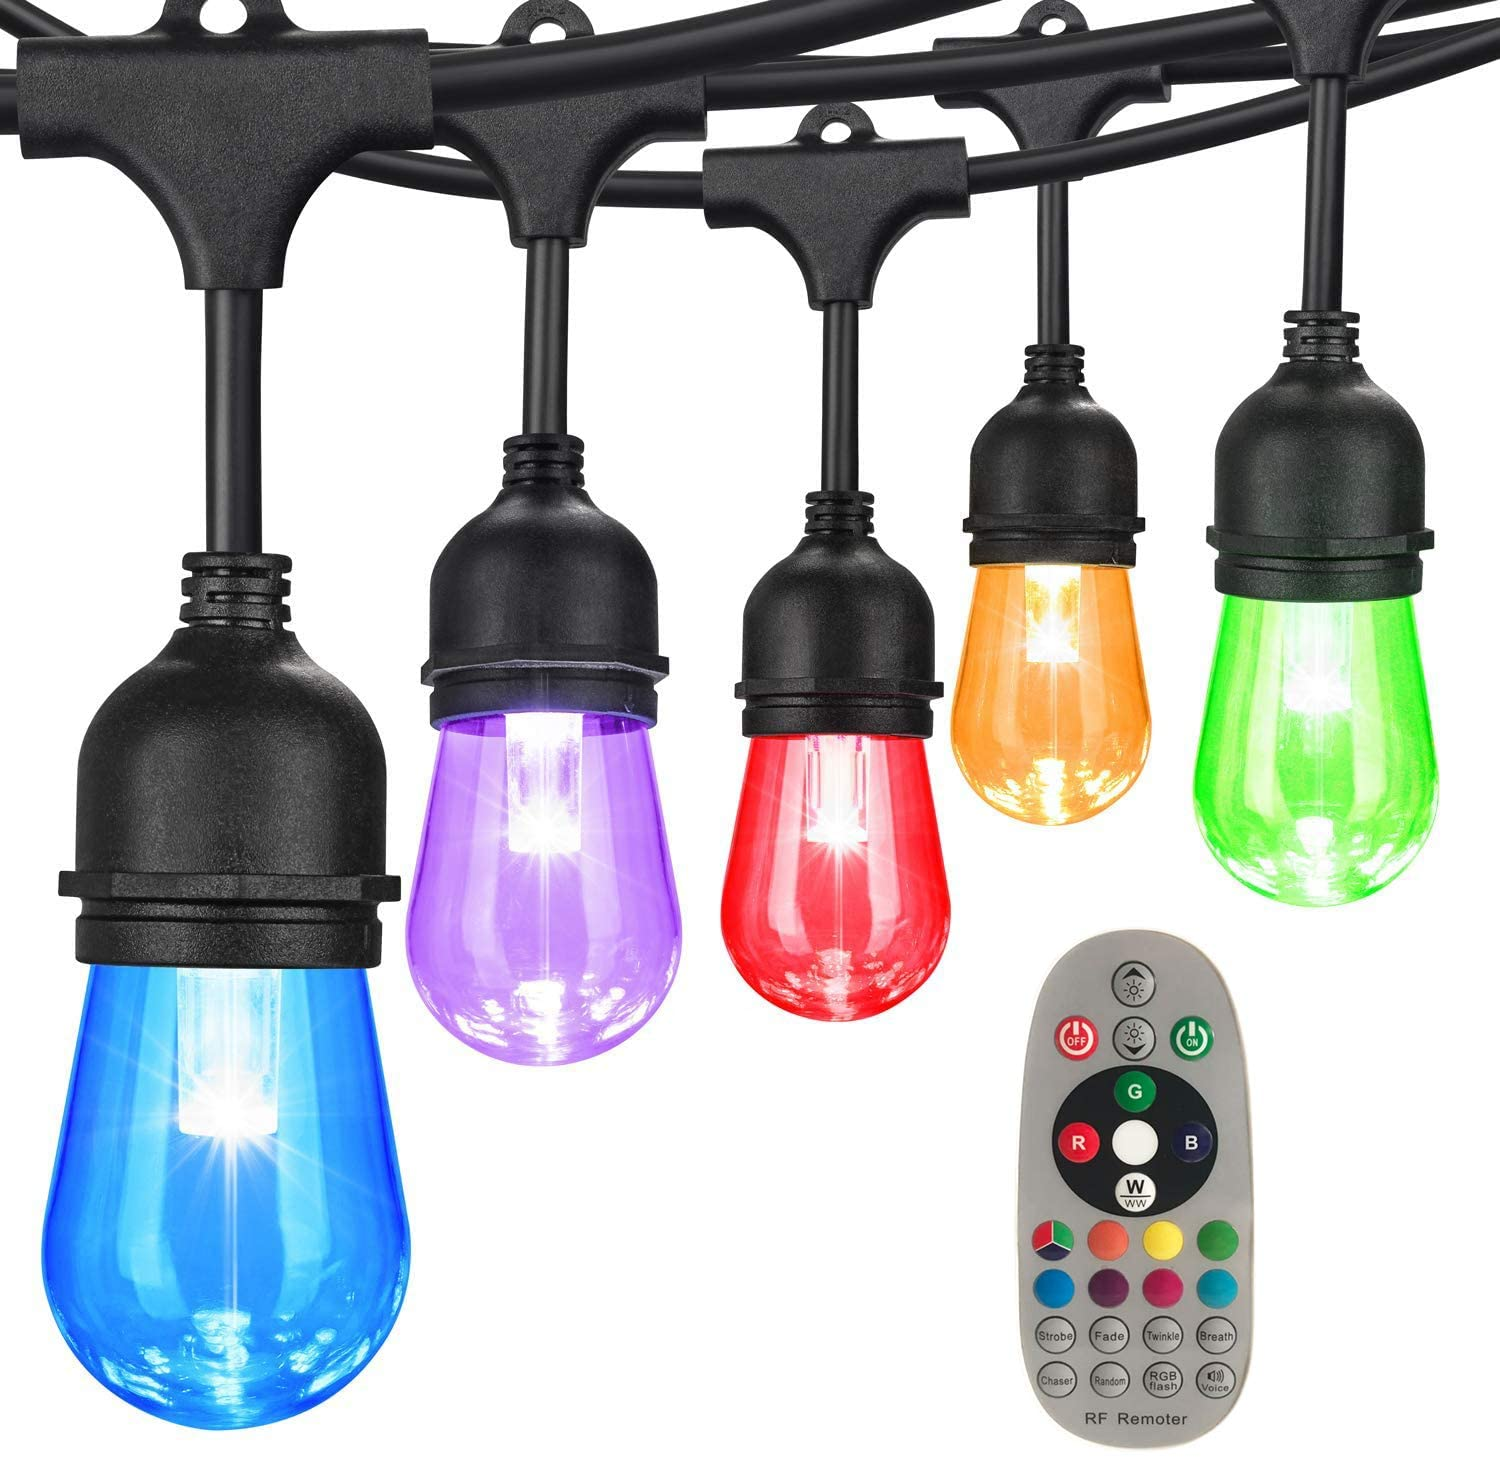 Outdoor light with remote control